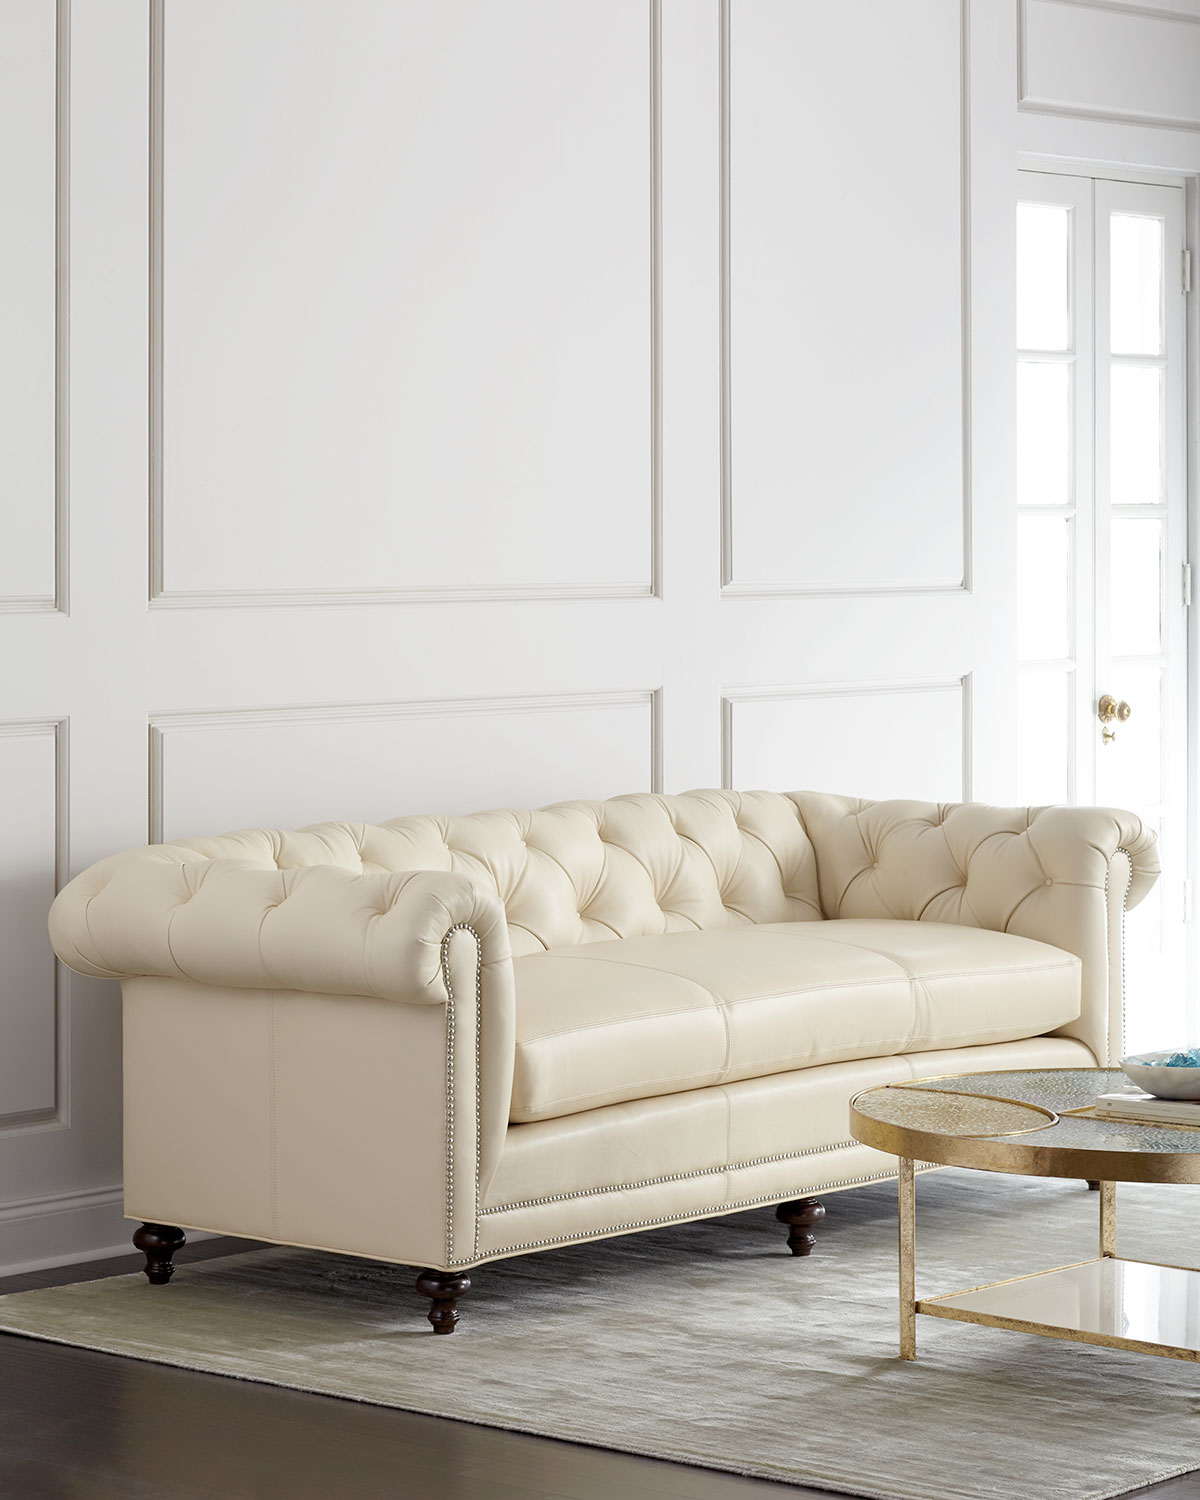 Bon Davidson Cream Tufted Chesterfield Sofa